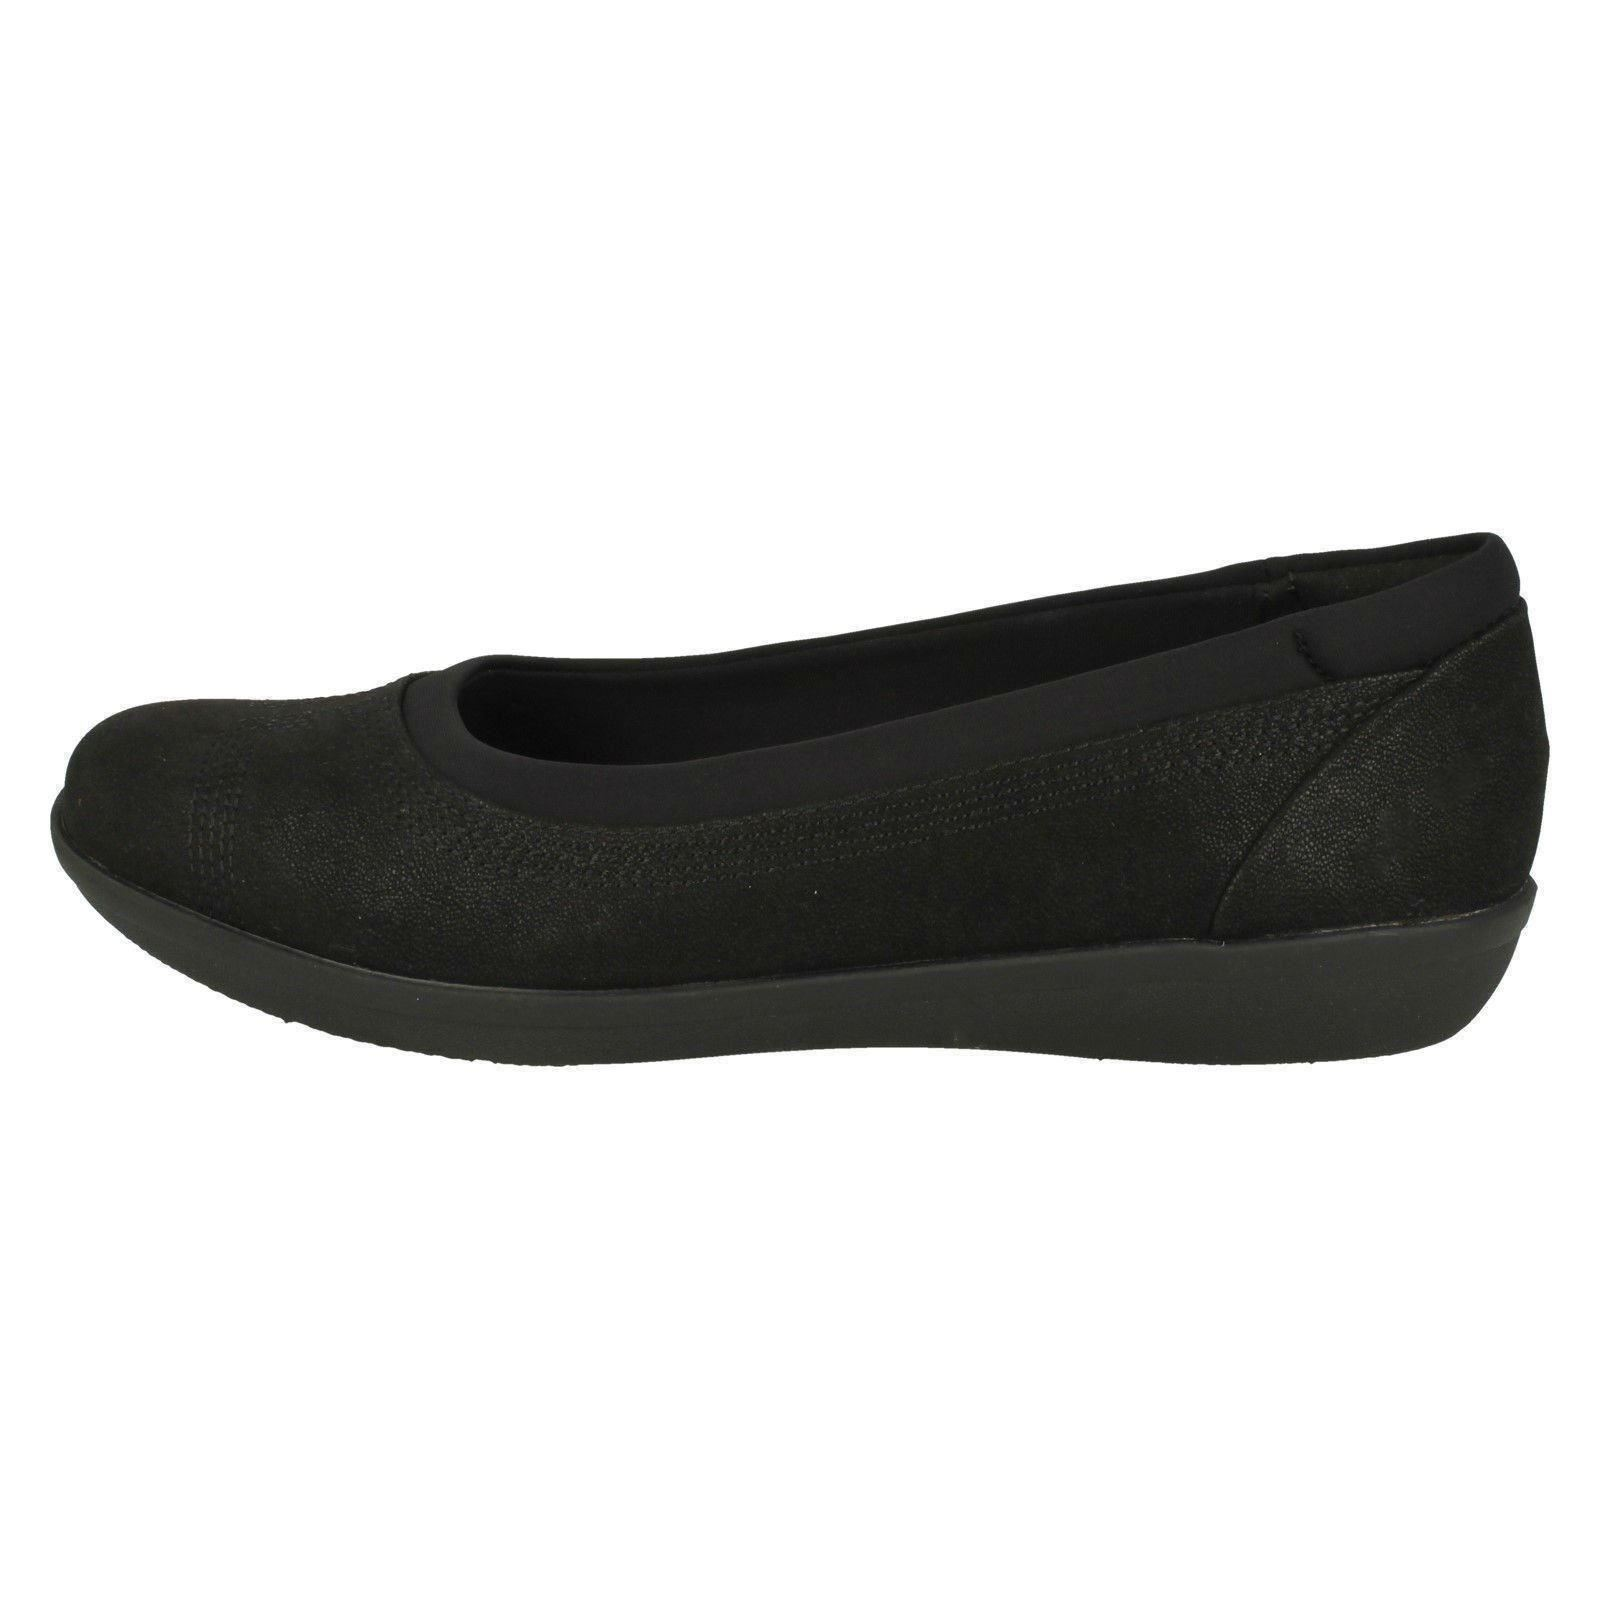 Mujer Nube Clarks Cordones Steppers Bajo Ayla Zapatos Sin d6xvxqwrX